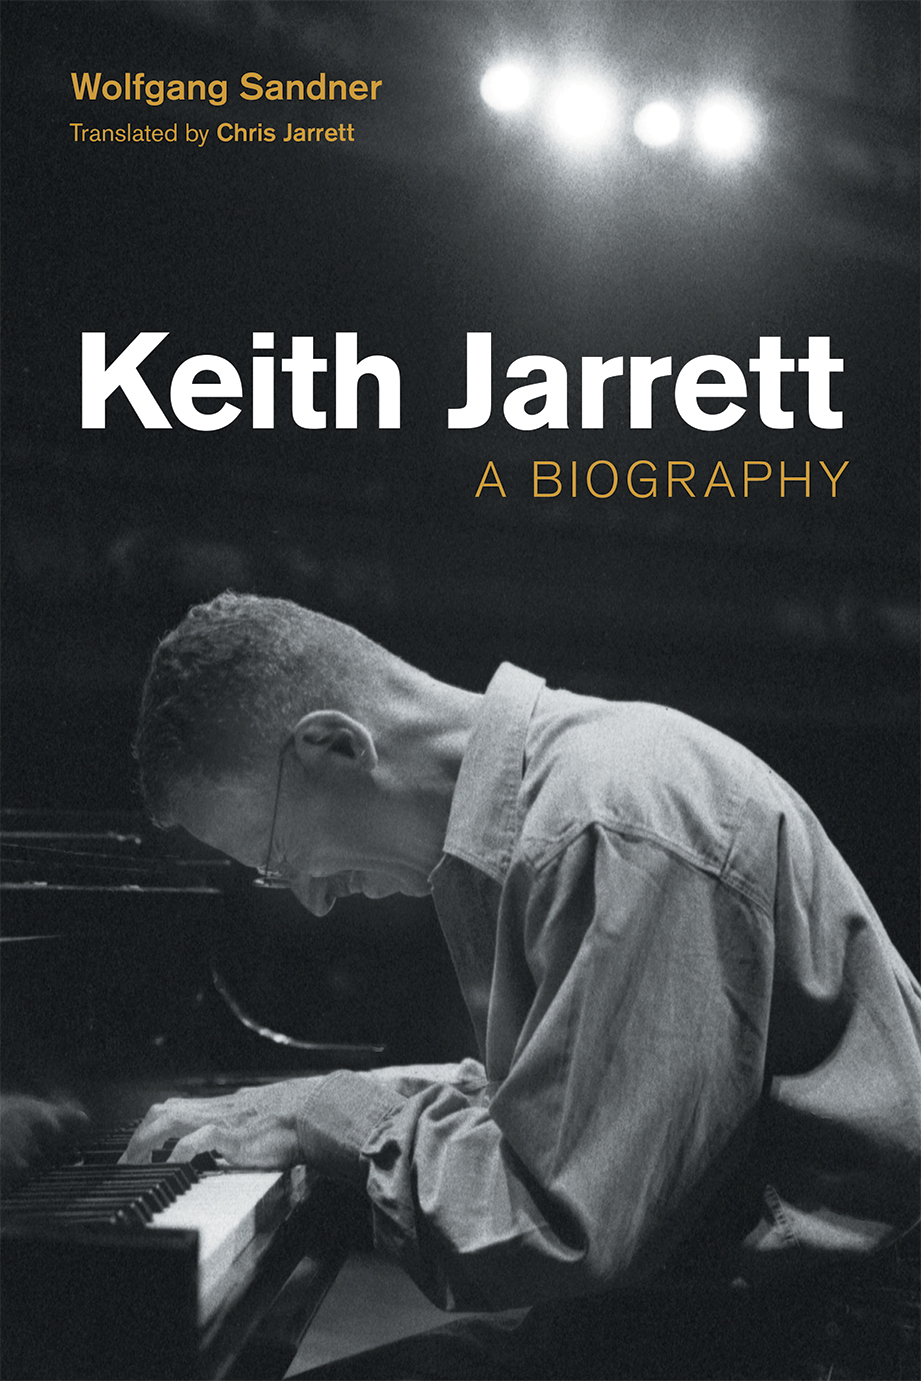 Keith Jarrett - A Biography - Wolfgang Sandner